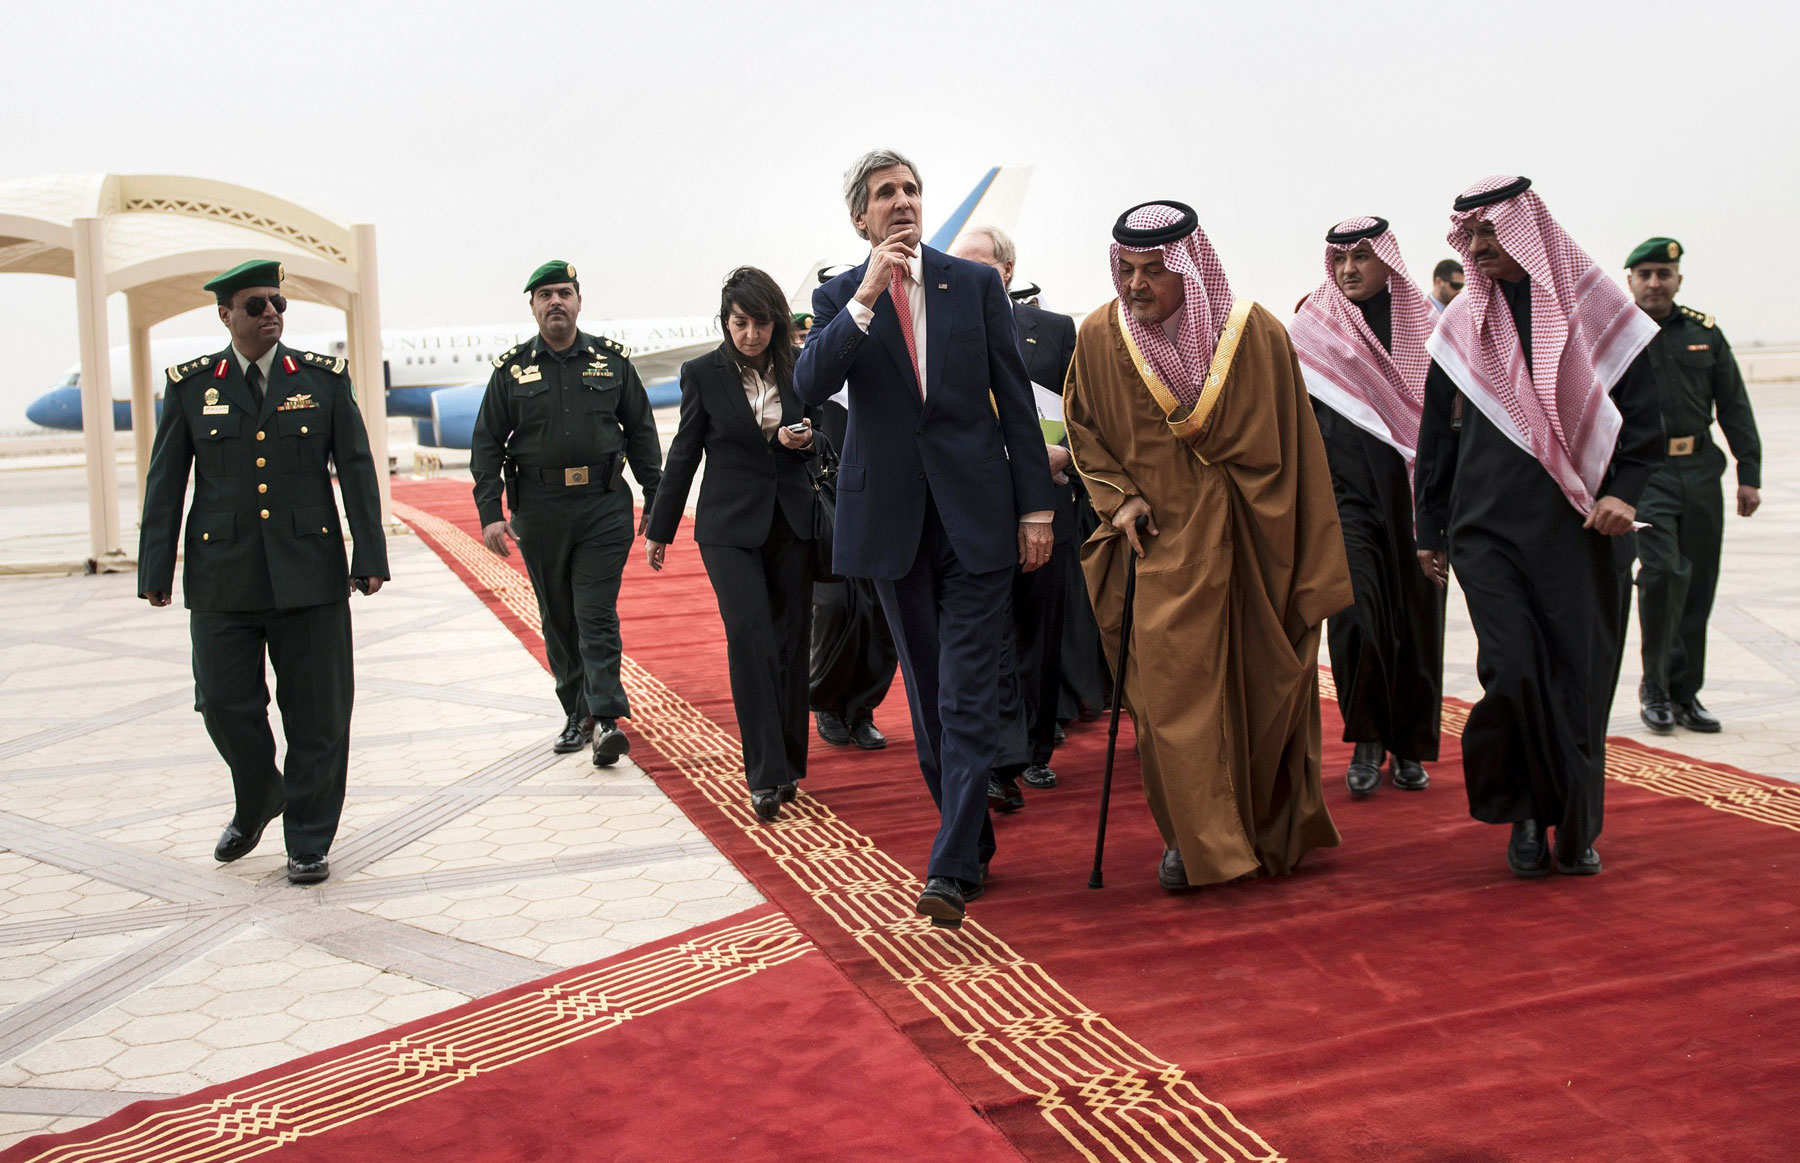 The Secretary of State visiting Riyadh in January to discuss the conflict in Syria.